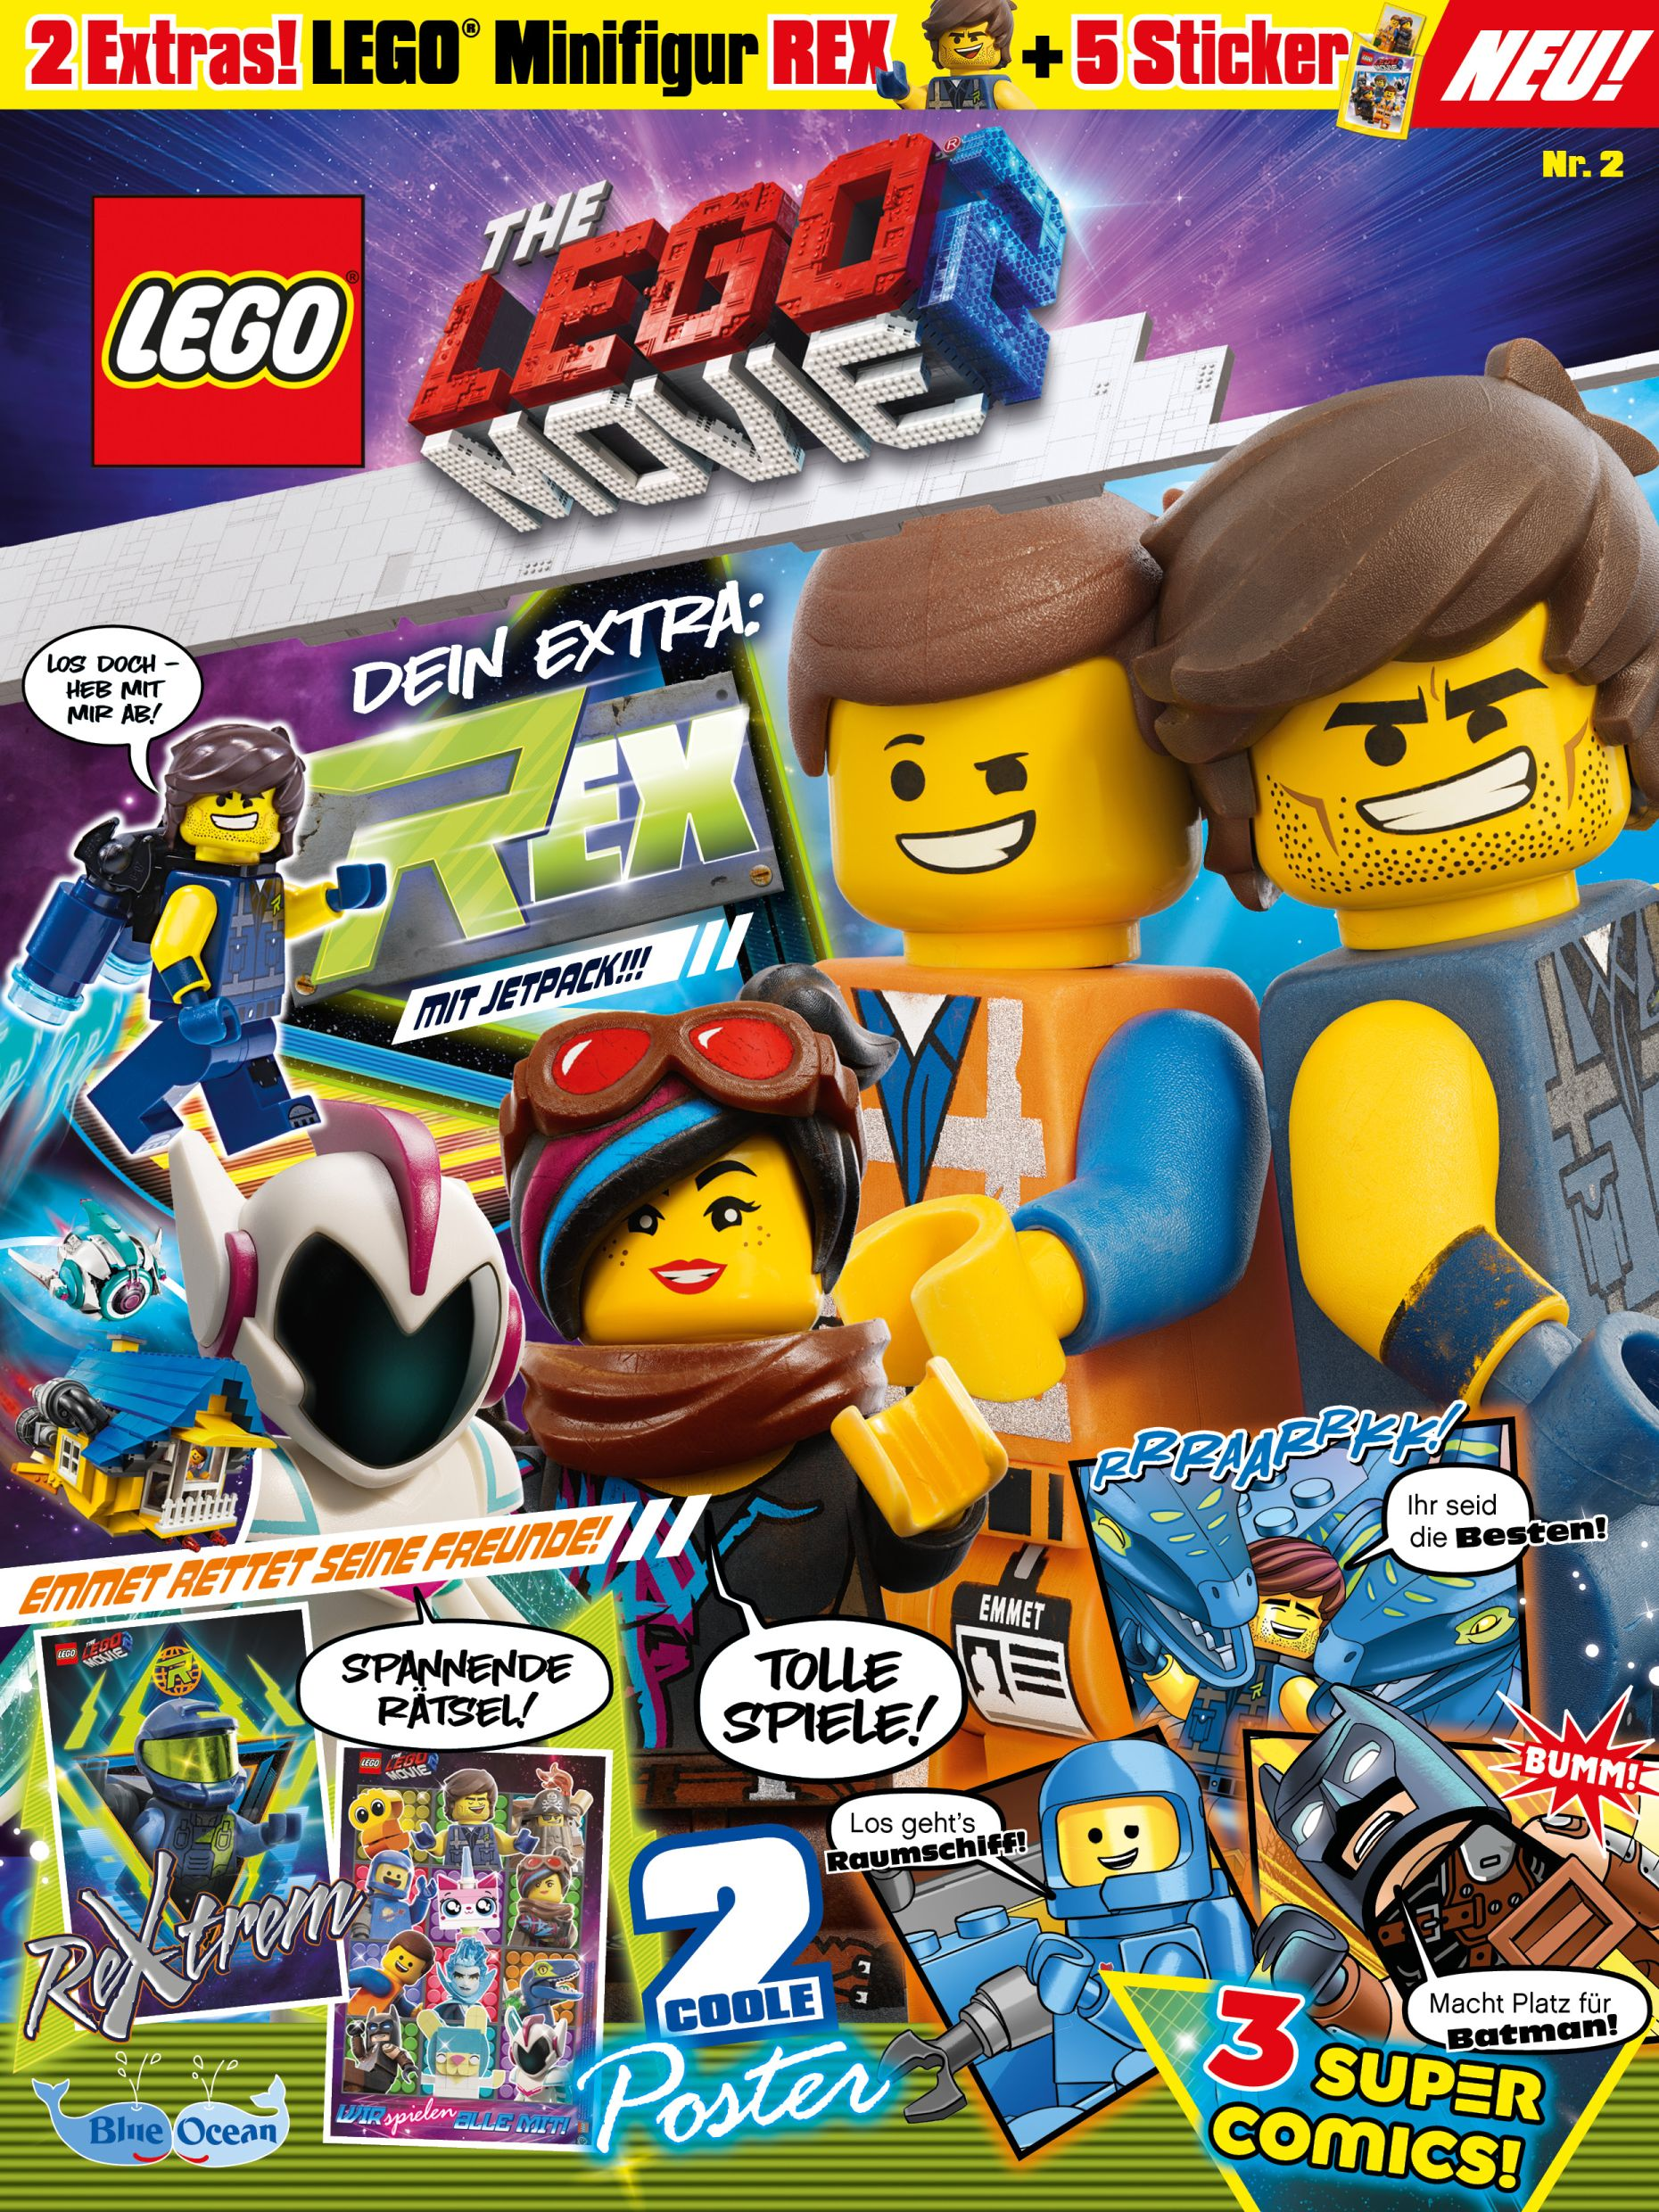 Sticker 134-The Lego Movie 2-Blue Ocean